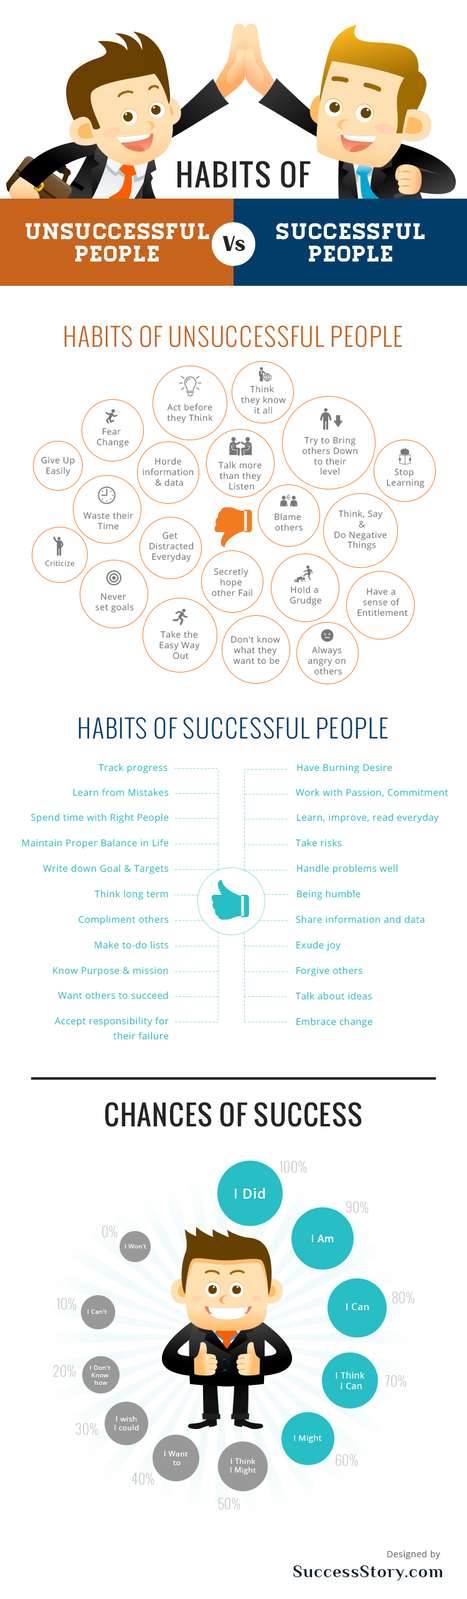 Habits Of Successful People - INFOGRAPHIC | Designing  services | Scoop.it